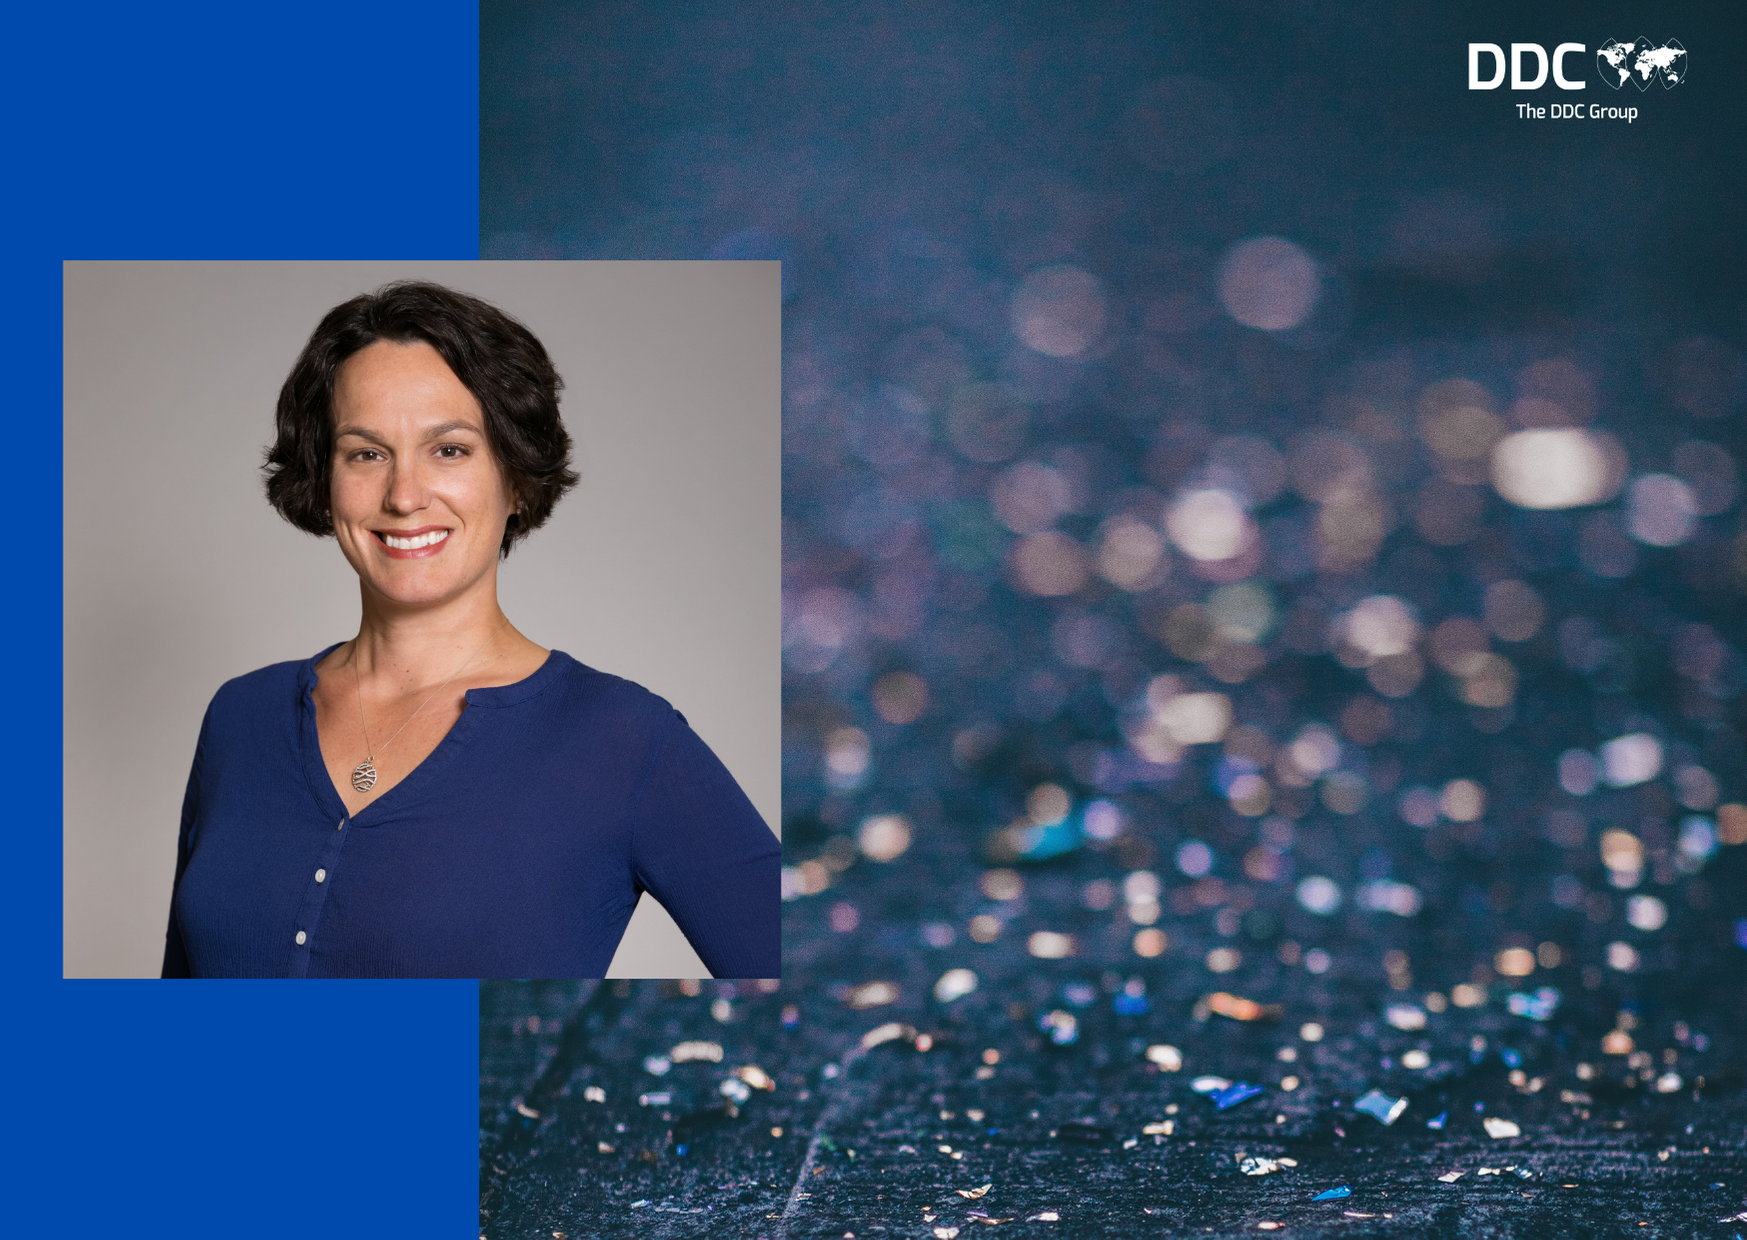 'Clients at the heart of the business':COO Marissa Crotty reflects on DDC's growth as she marks 15-year anniversary